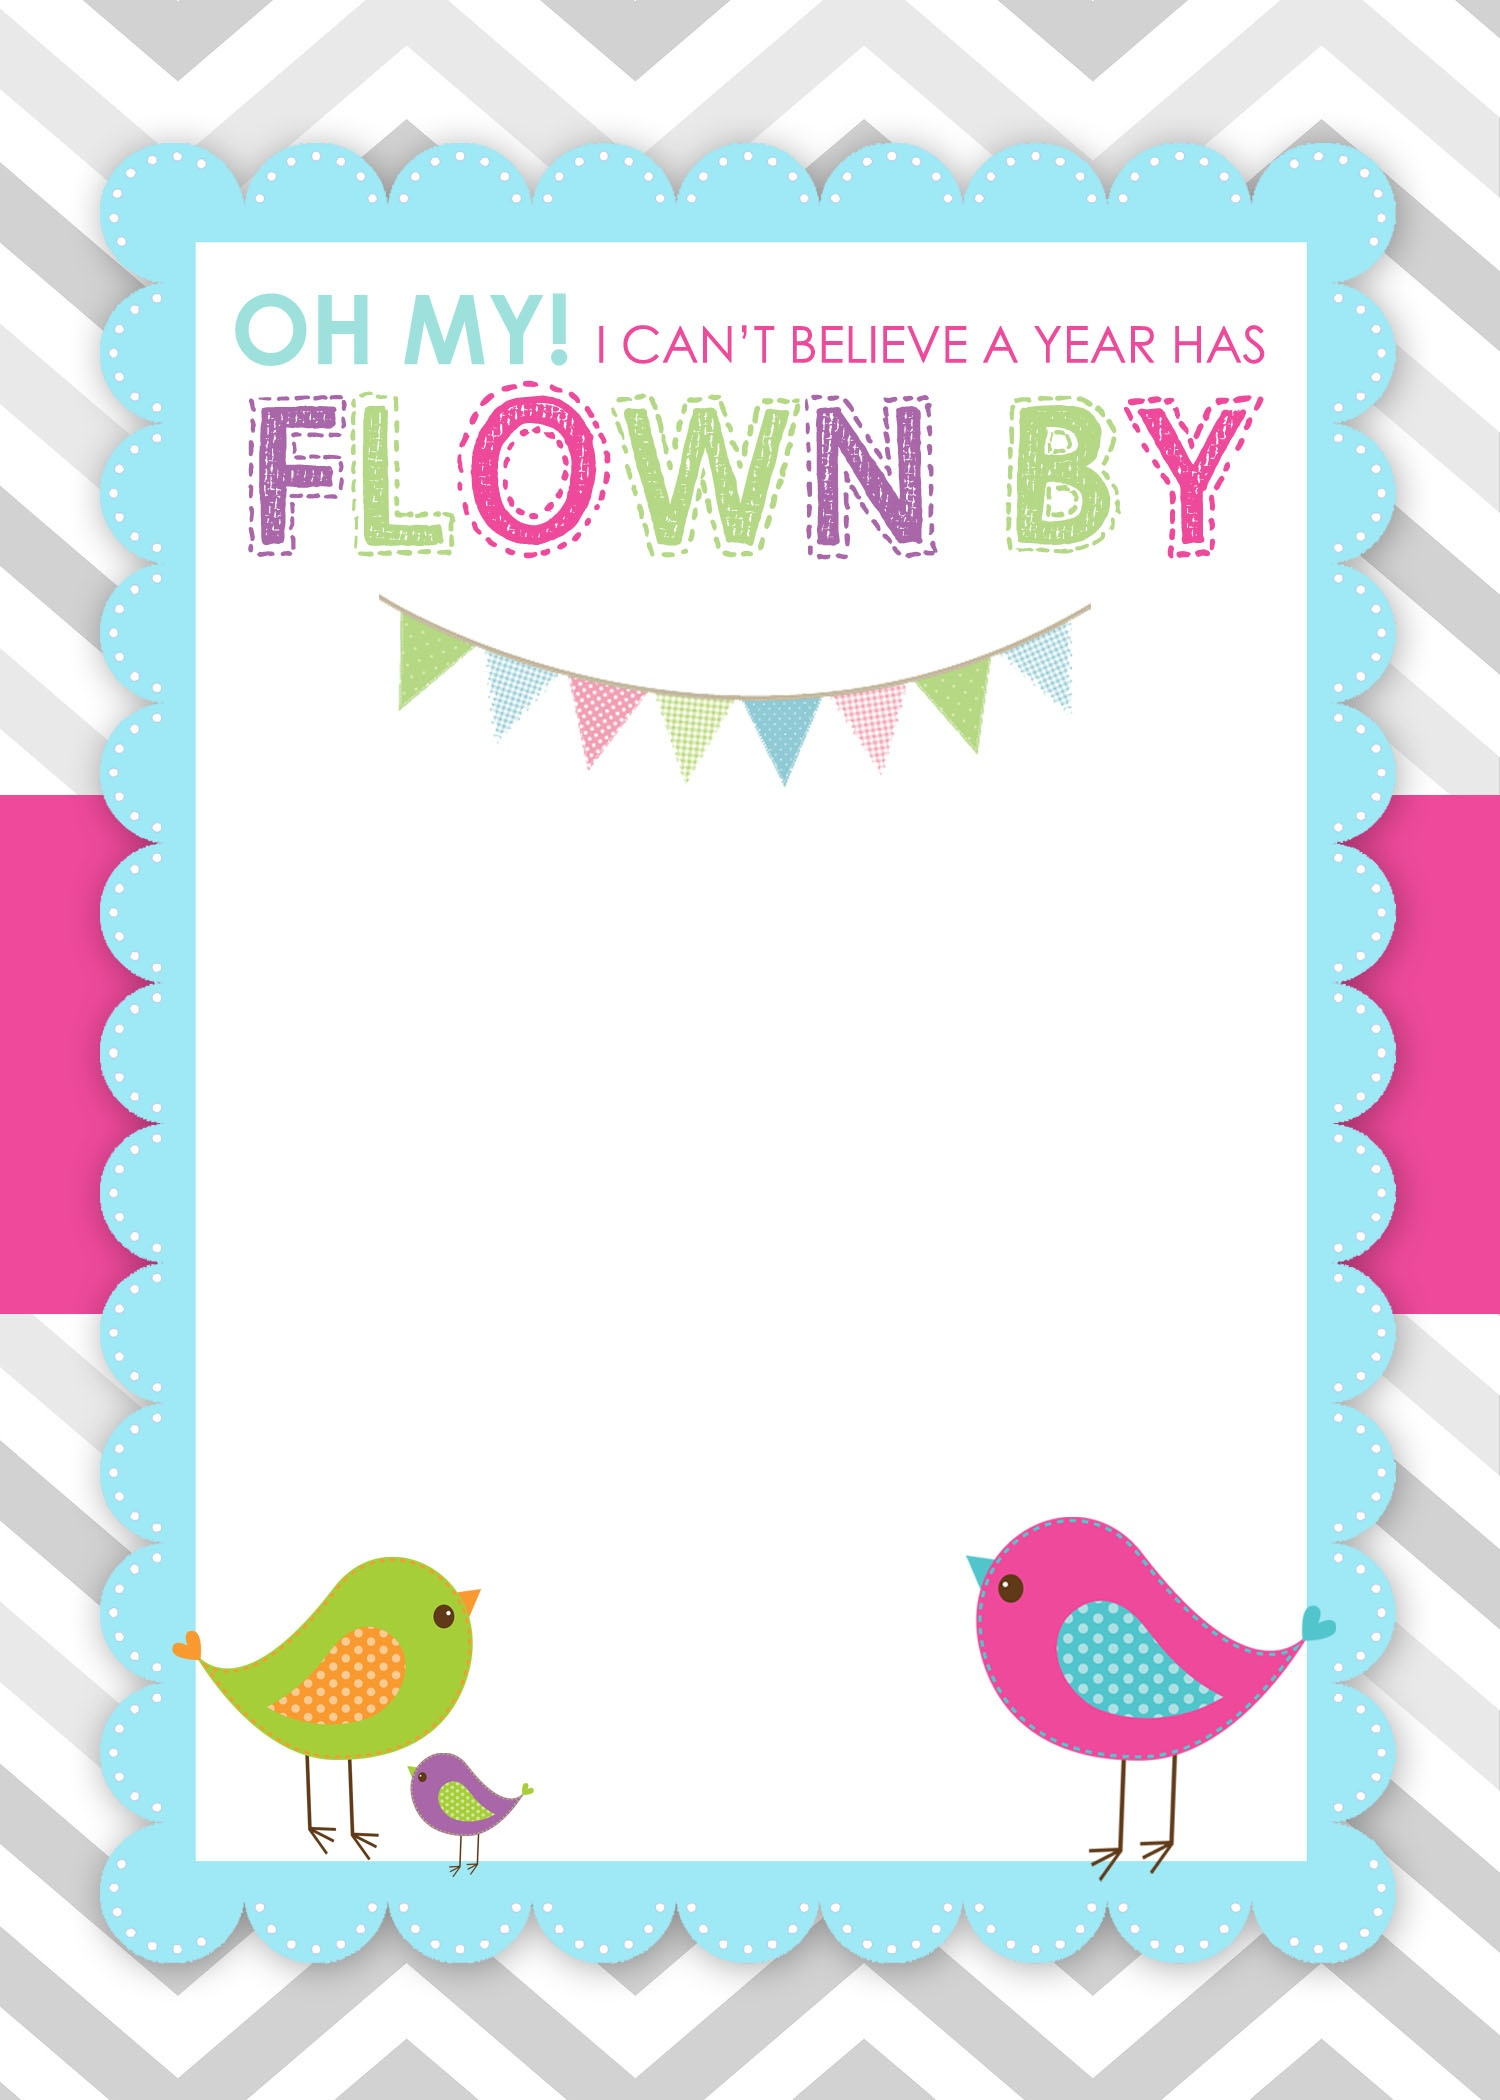 Bird Birthday Party With Free Printables - How To Nest For Less™ - Free Printable Water Birthday Party Invitations